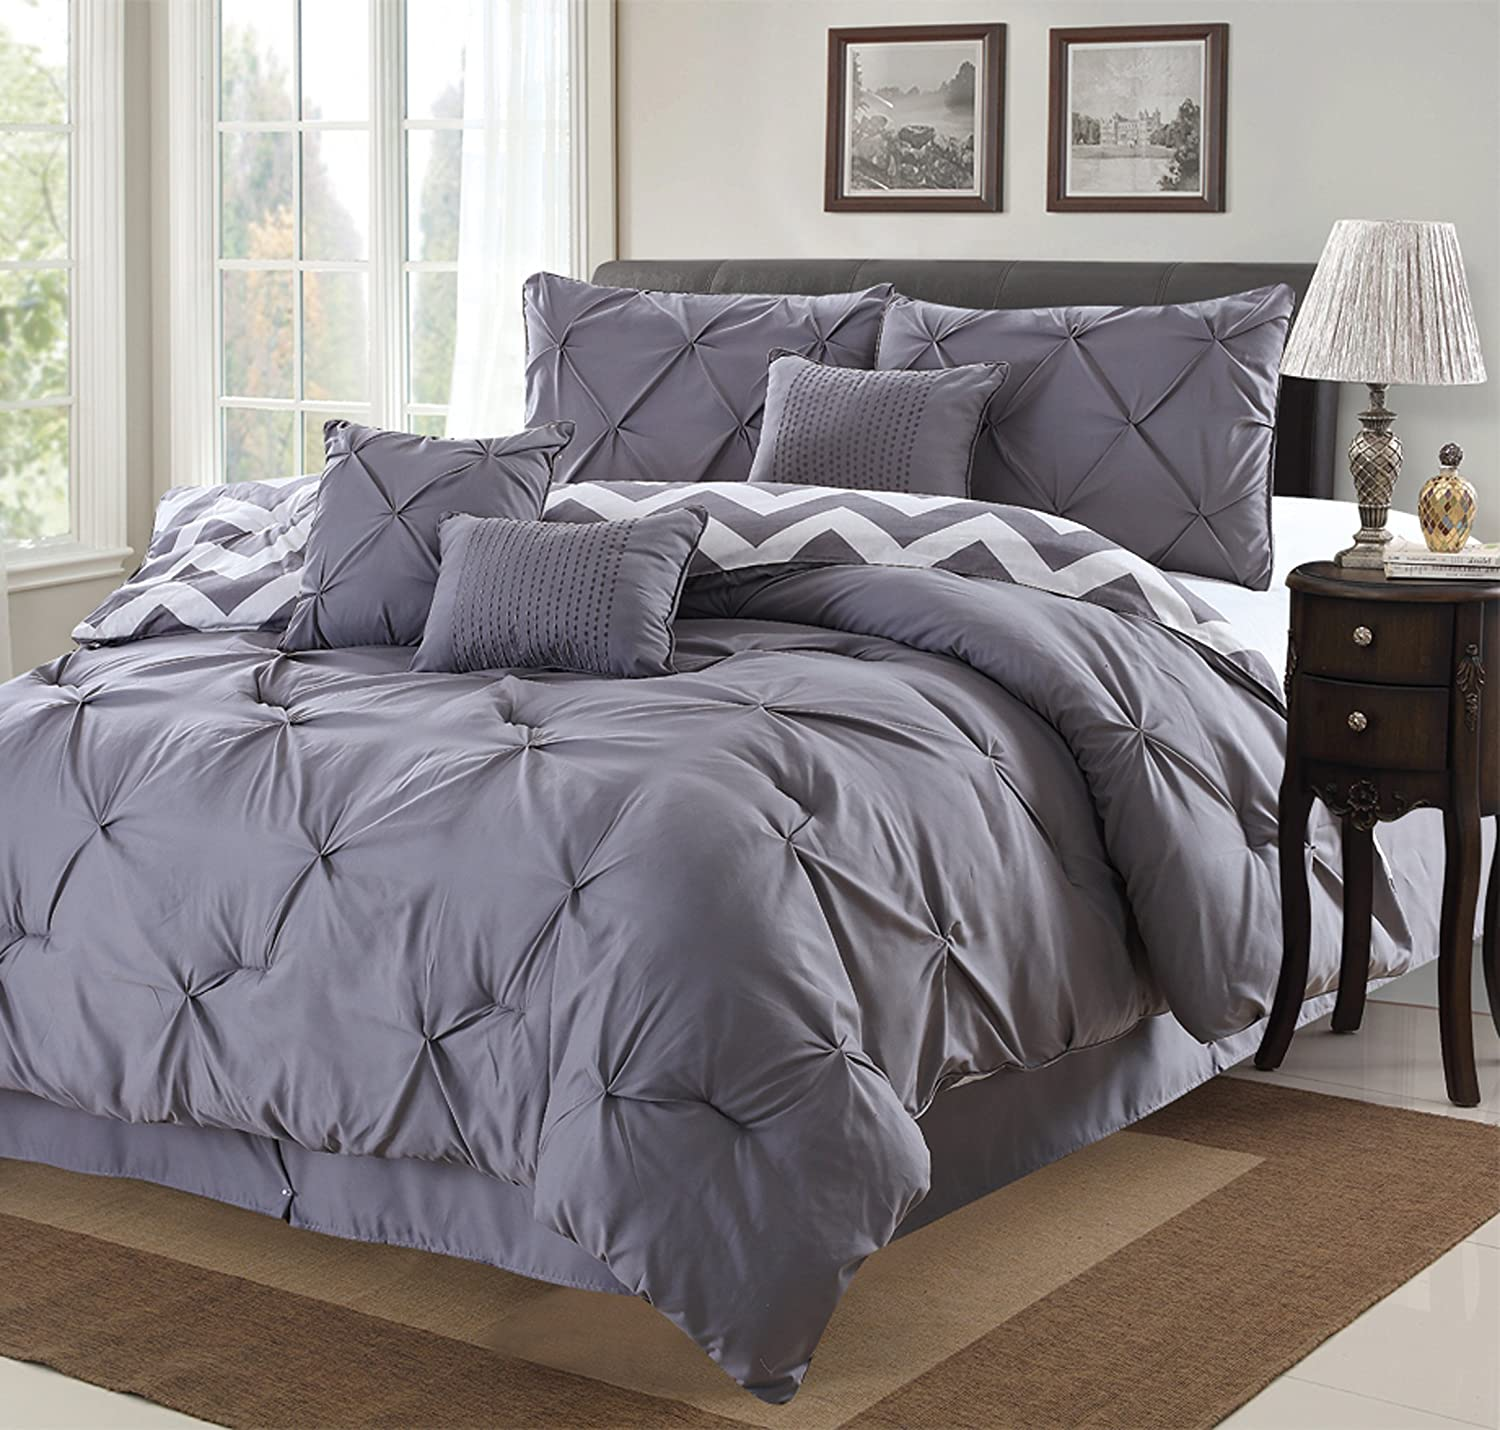 previous grey next bonus plus sherpa pillowcases backing with comforter idc mink homewares micro dark by